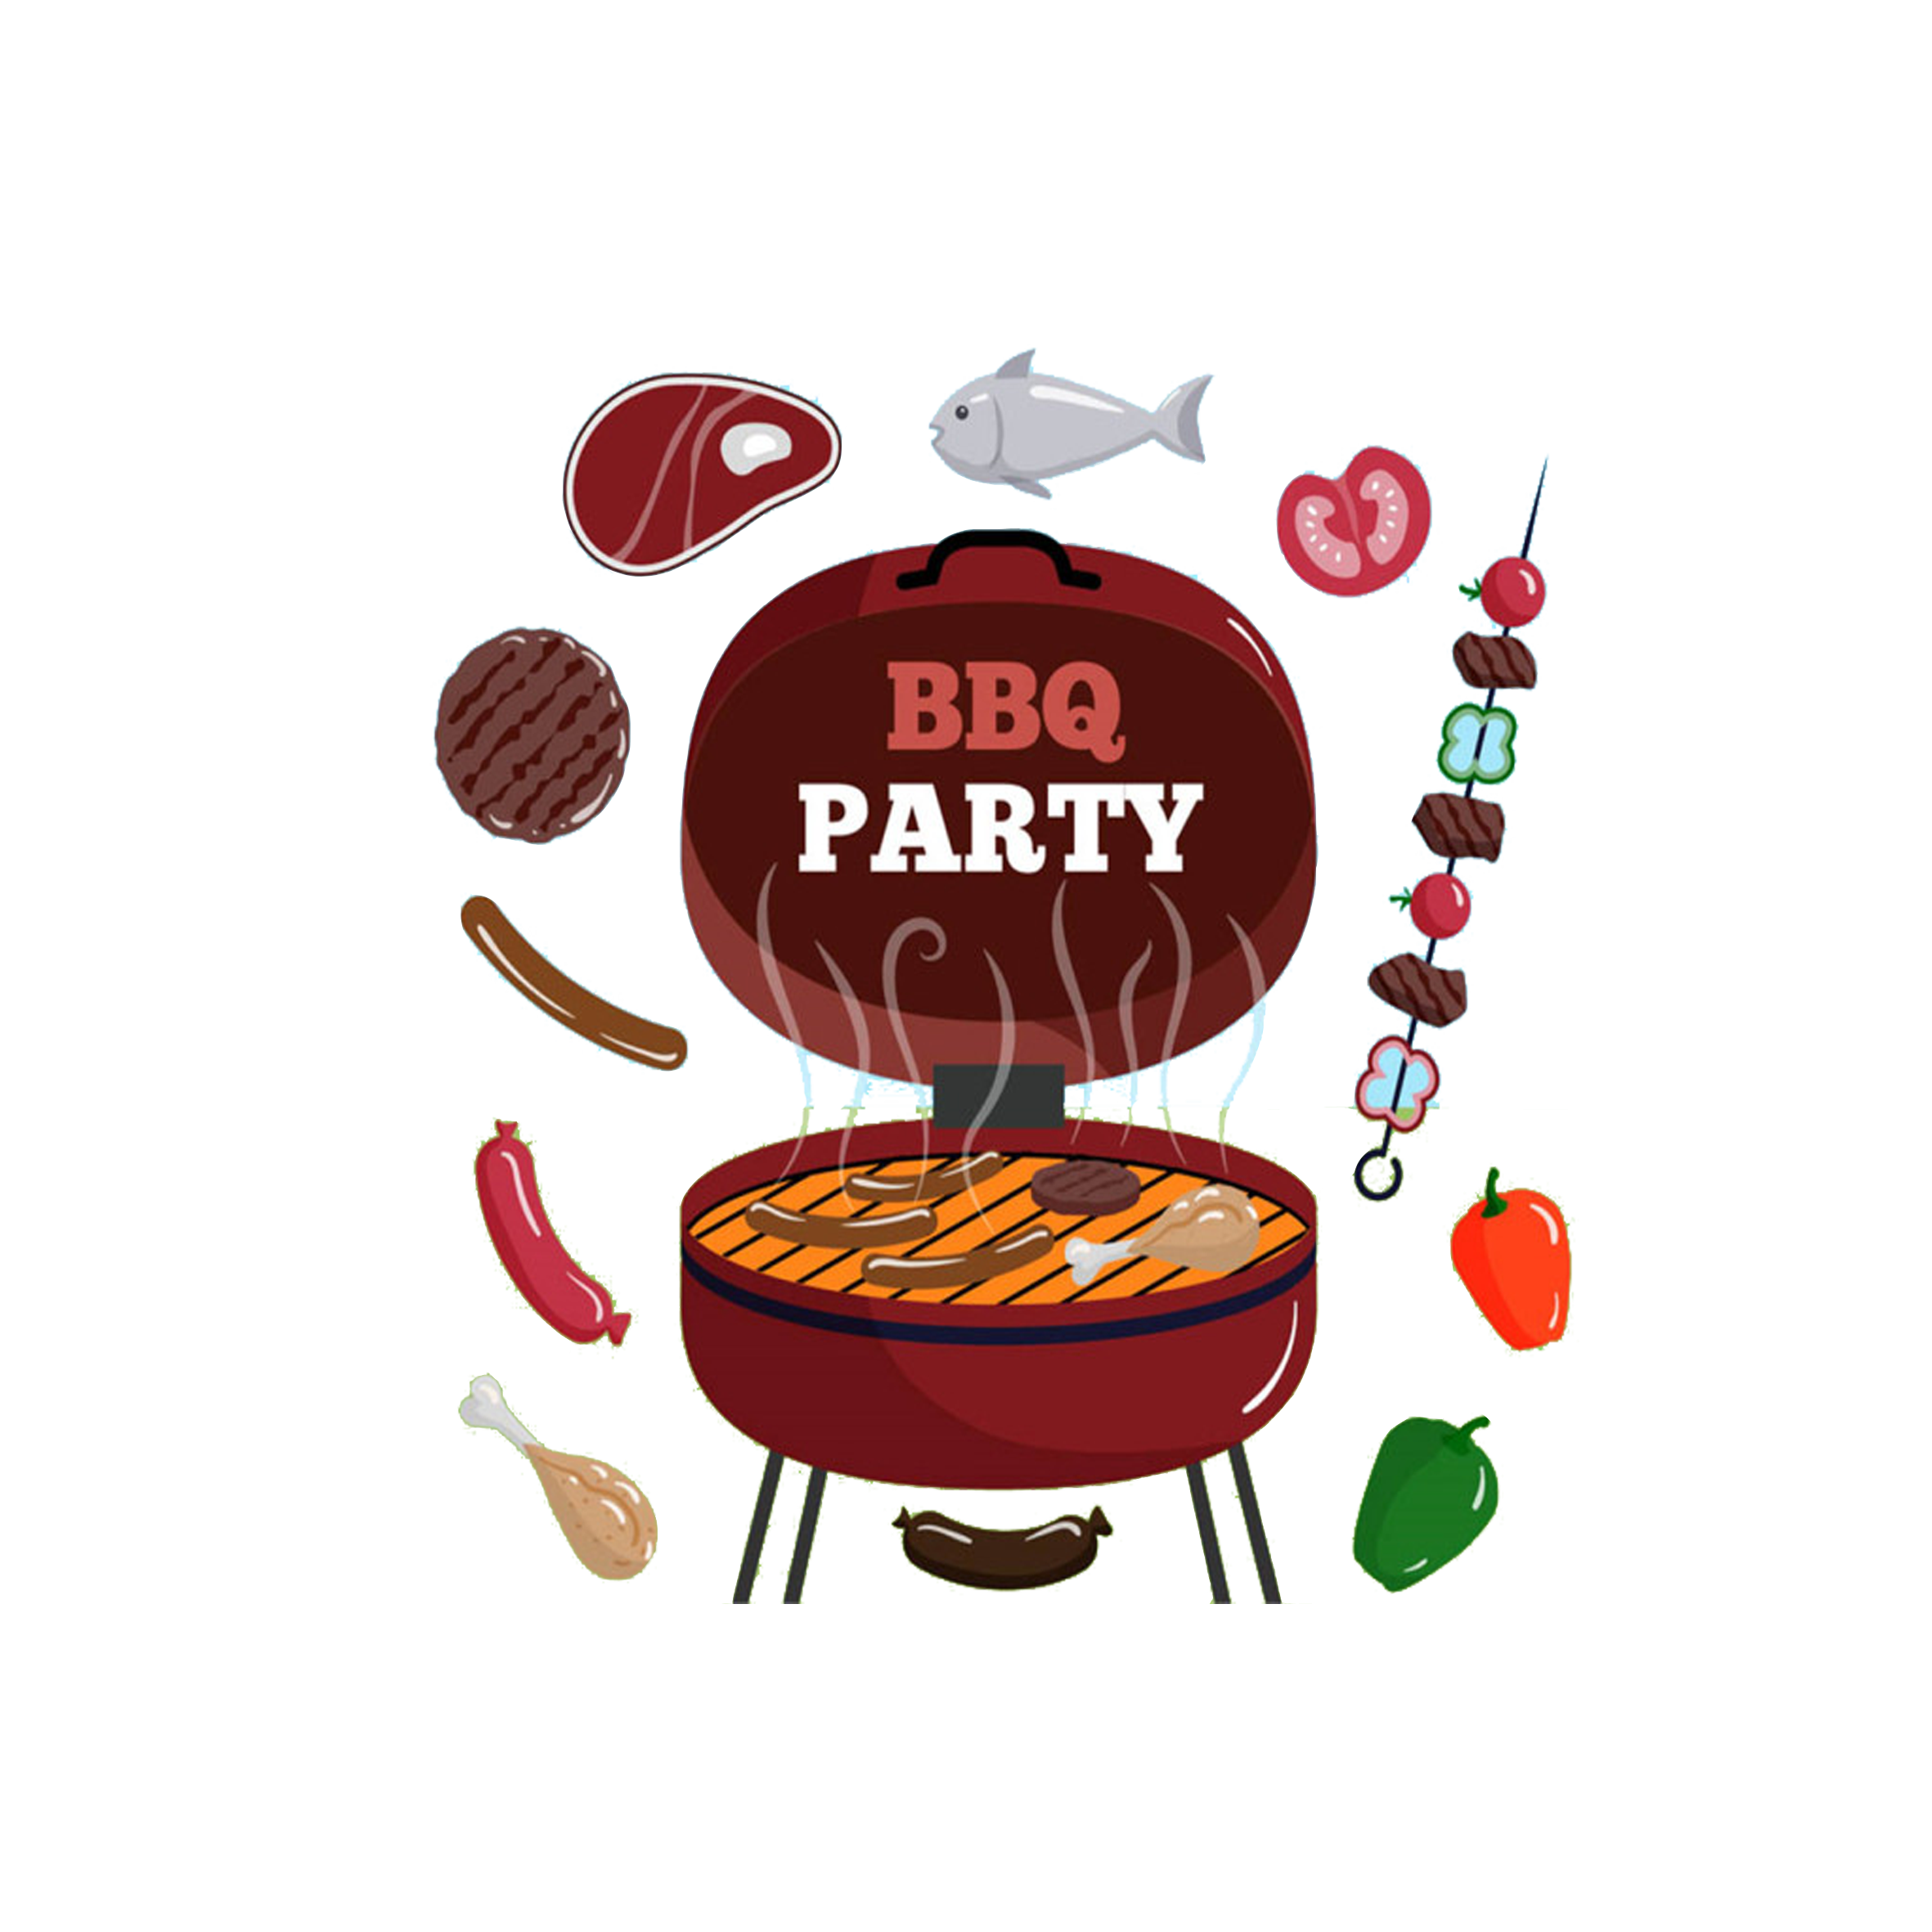 Hot dog grilling clipart png freeuse stock Barbecue Hot dog Seafood Steak Buffet - Painted Grill 2362*2362 ... png freeuse stock